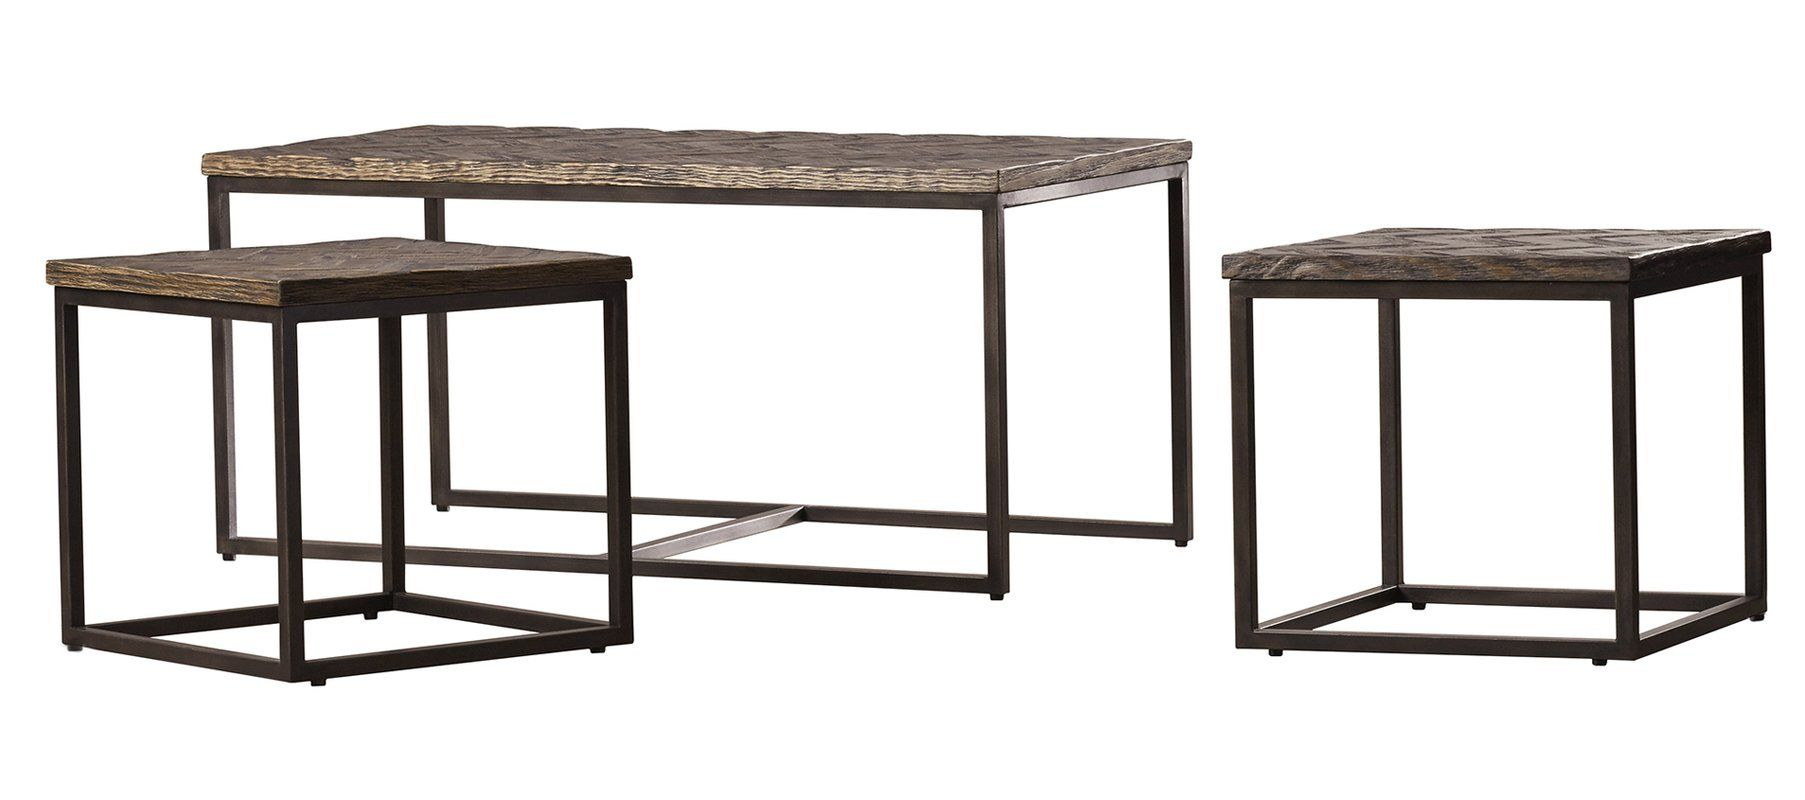 Aguilar Nesting 3 Piece Coffee Table Set With Images Coffee Table 3 Piece Coffee Table Set Cool Coffee Tables [ 800 x 1805 Pixel ]